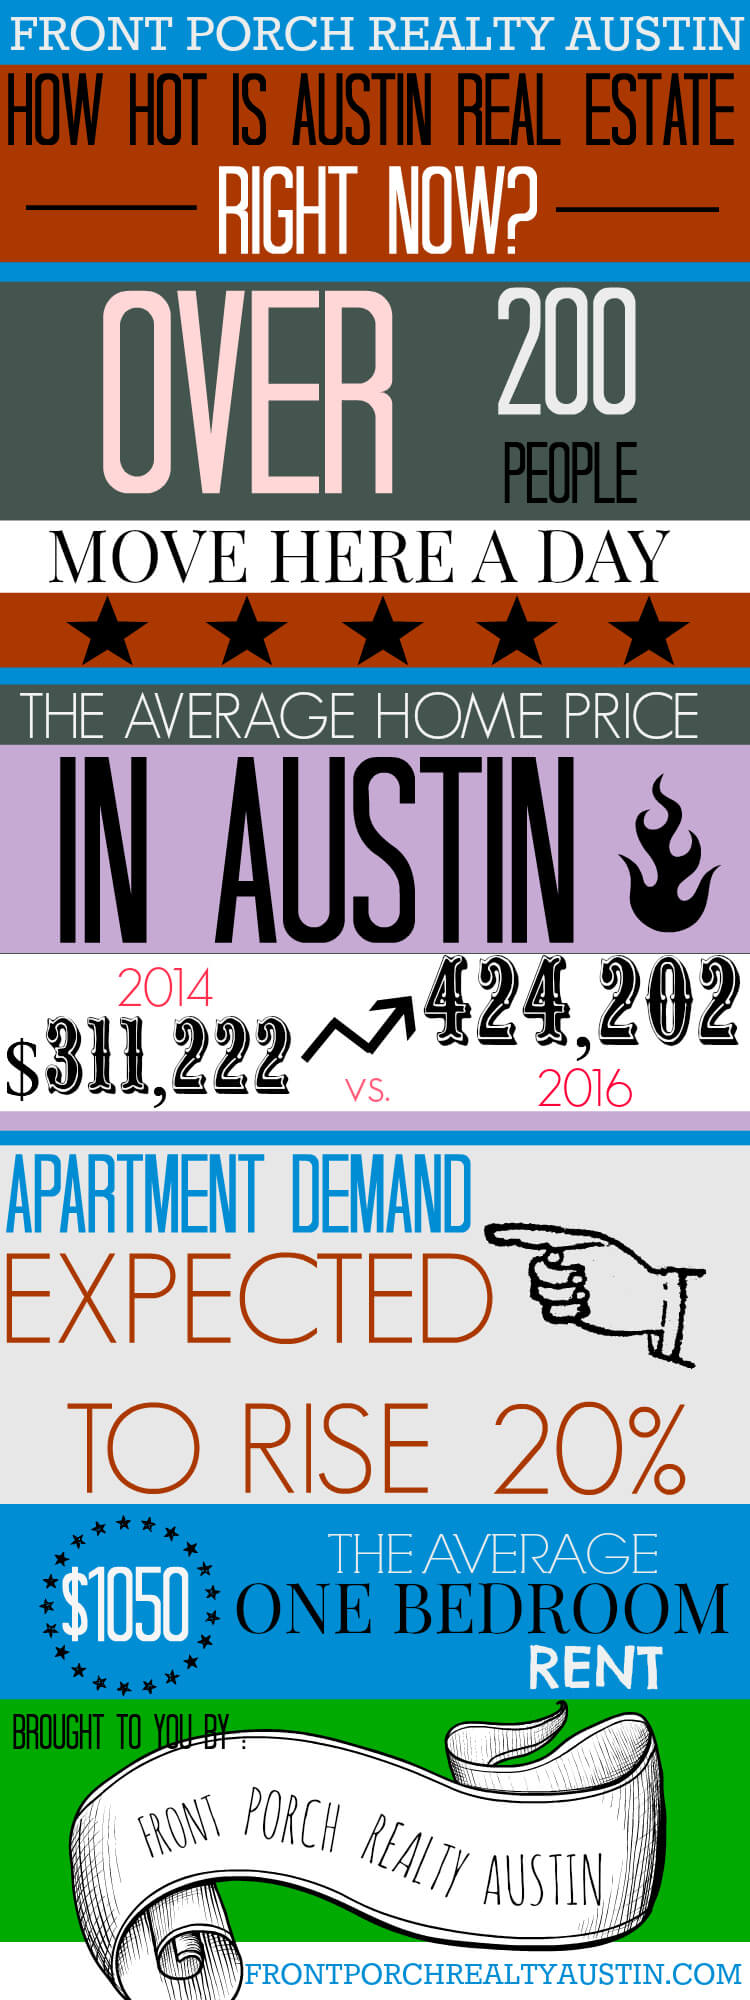 4 Amazing Facts About The Austin Real Estate Market